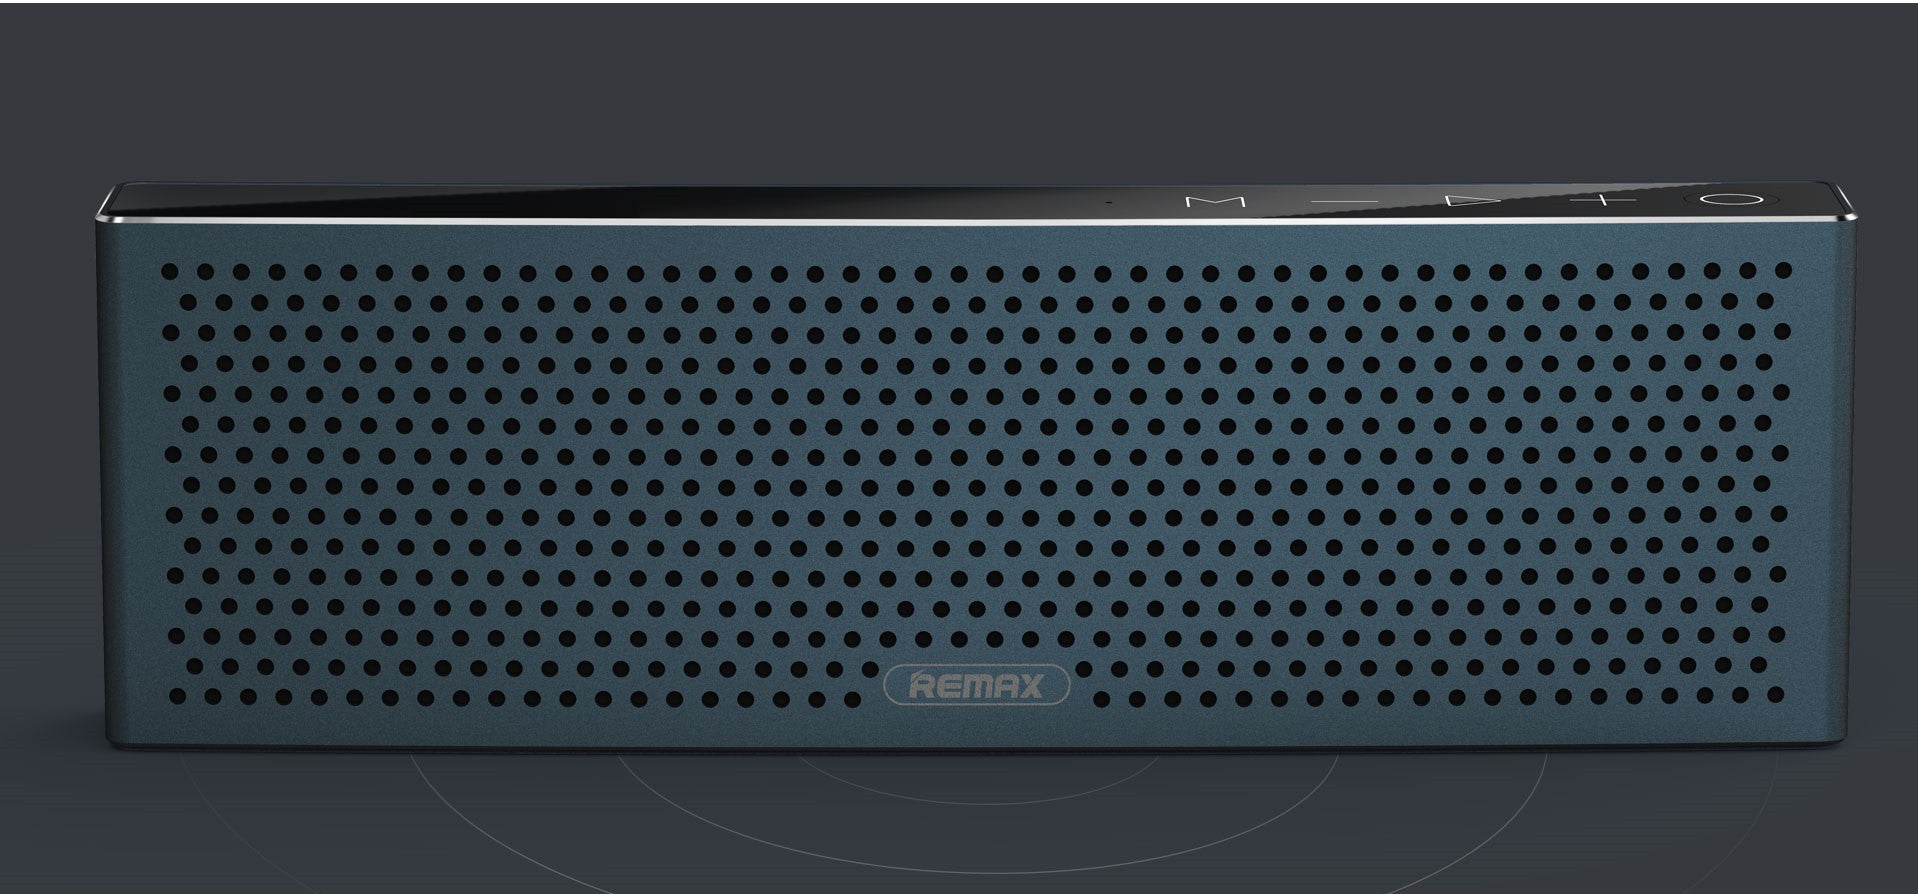 https://www.iremax.com/products/bluetooth-speaker-rb-m20